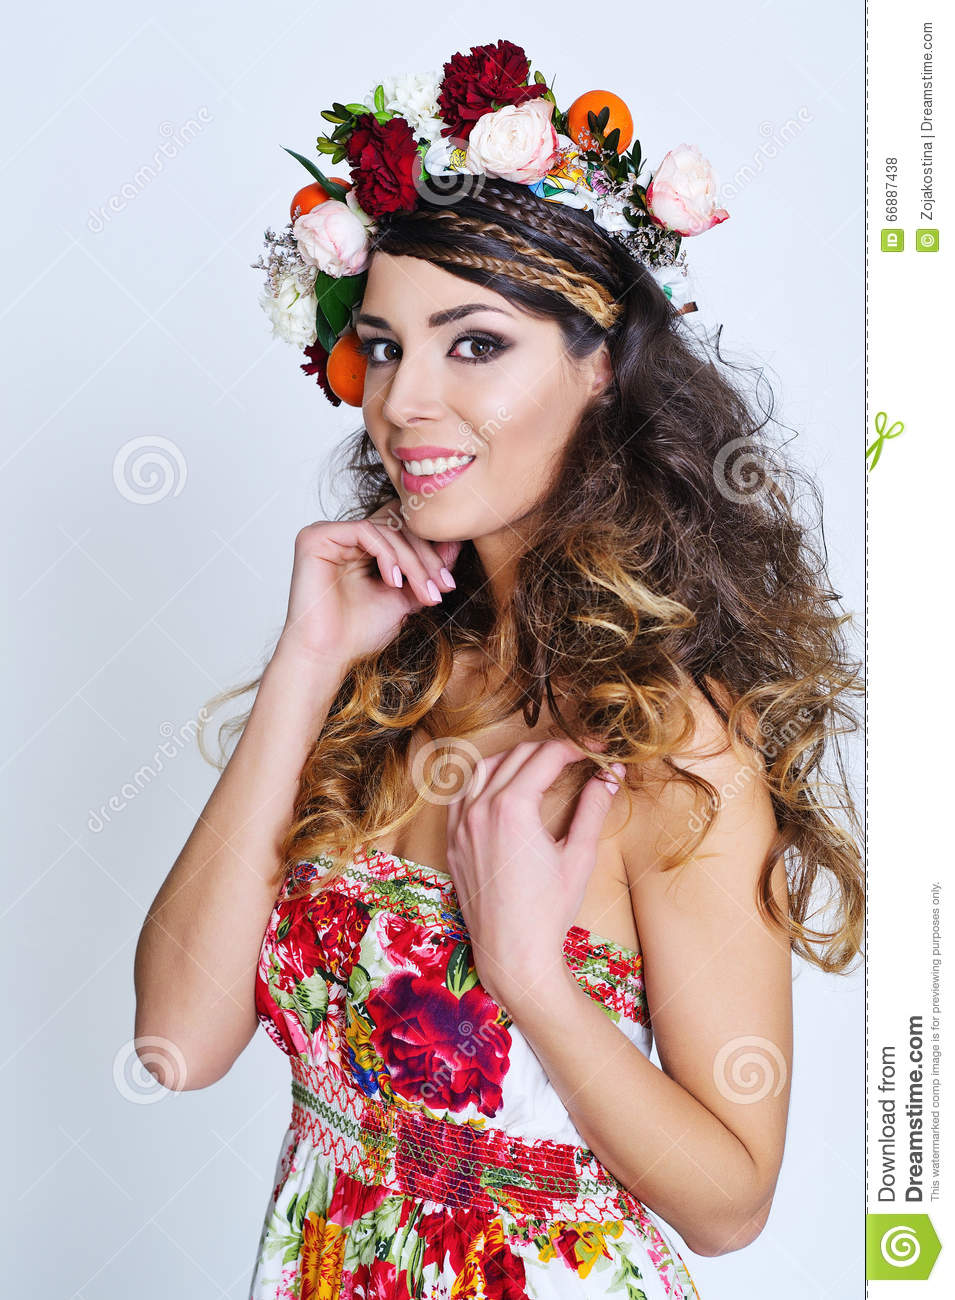 Beautiful Woman In Flower Crown Stock Photo Image Of Hippie